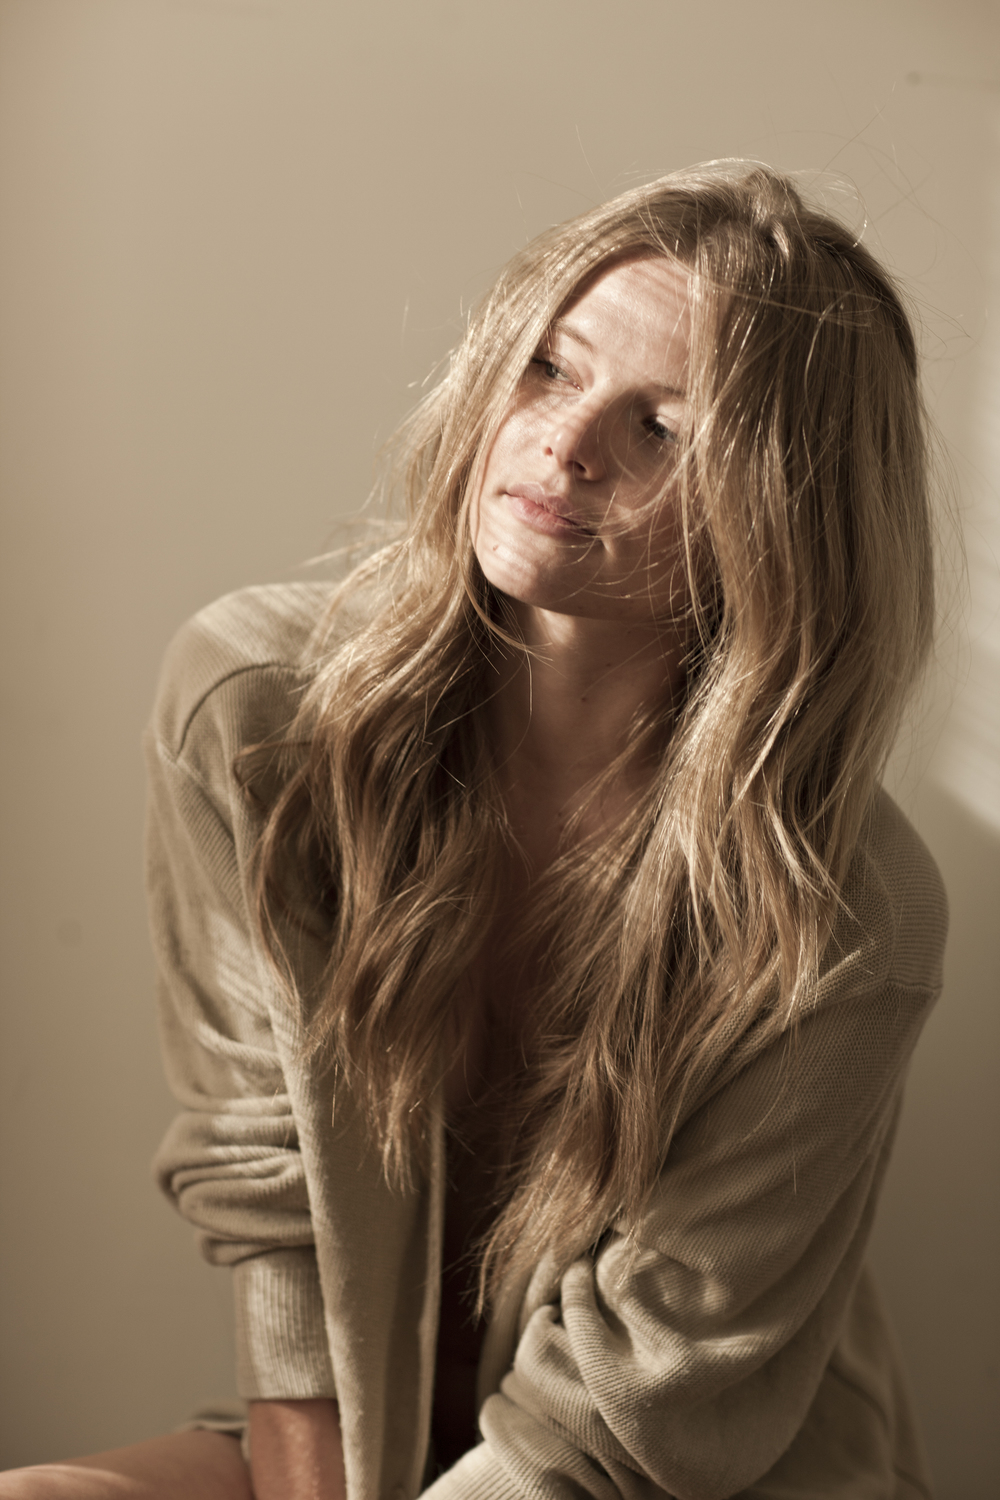 hires-936032-Thompson2011_DanielleRedman-0331.jpg